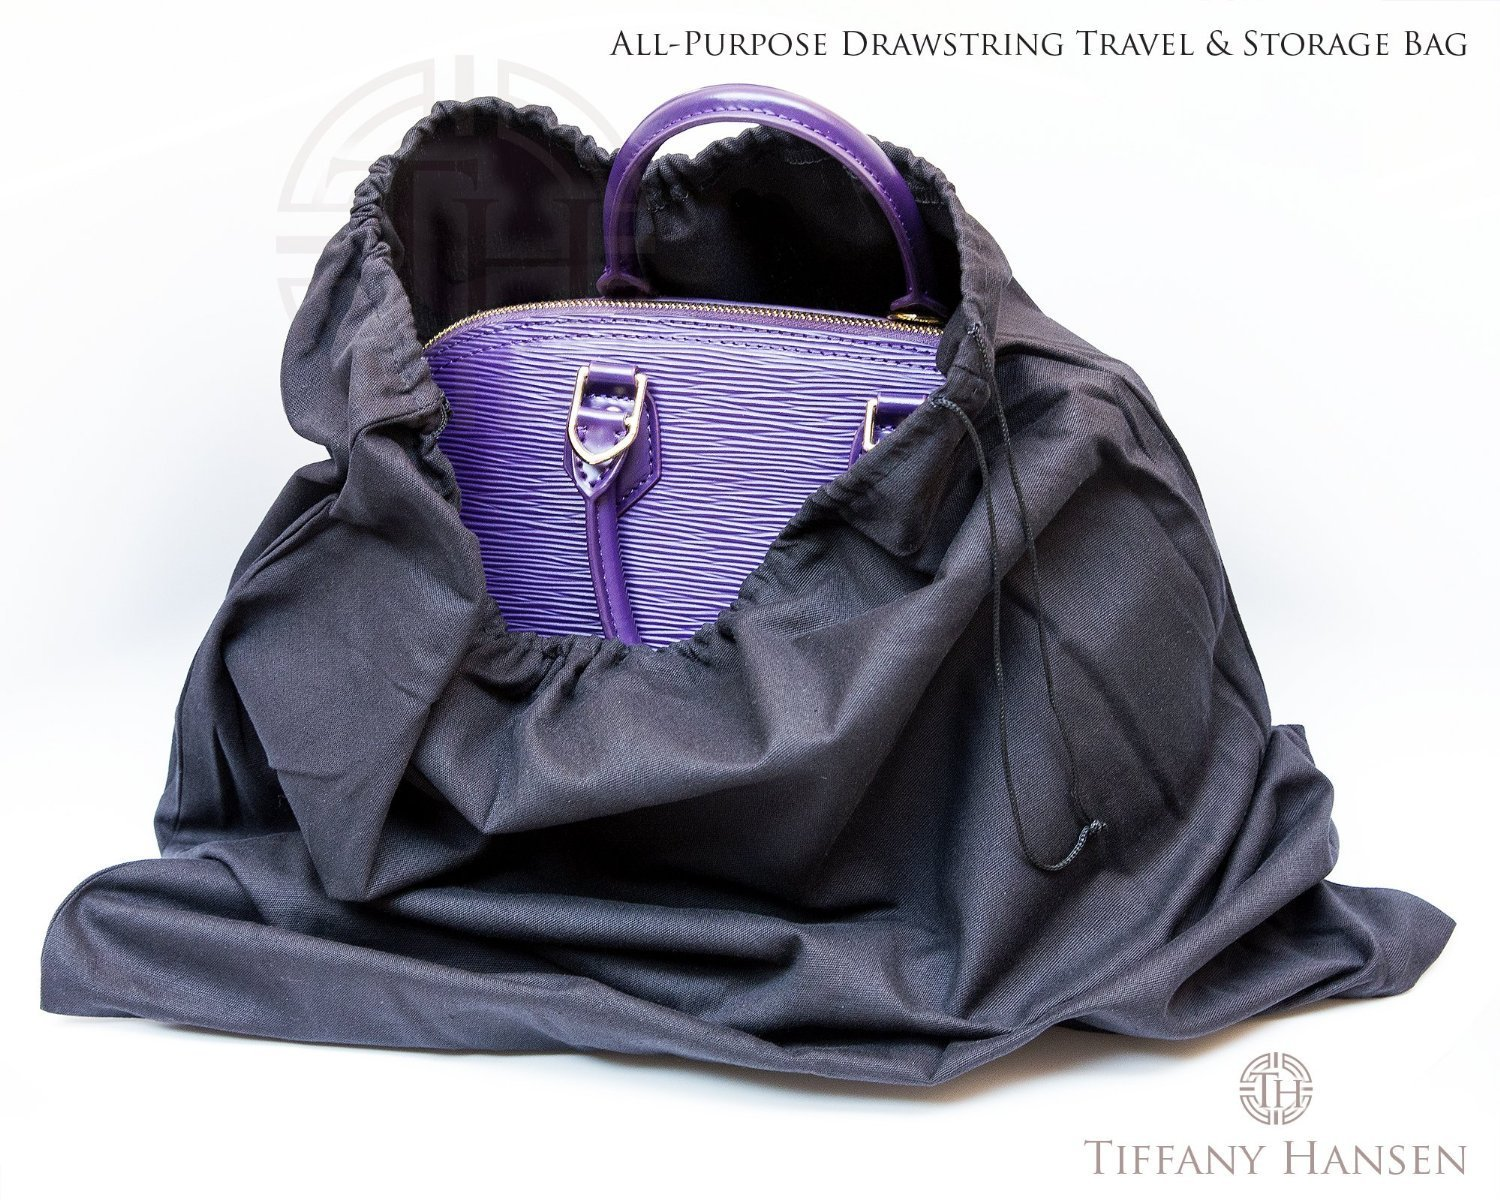 Tiffany Hansen's Cotton Large Drawstring Shoe & Purse Travel Storage Bag (12) by Tiffany Hansen Designs (Image #1)